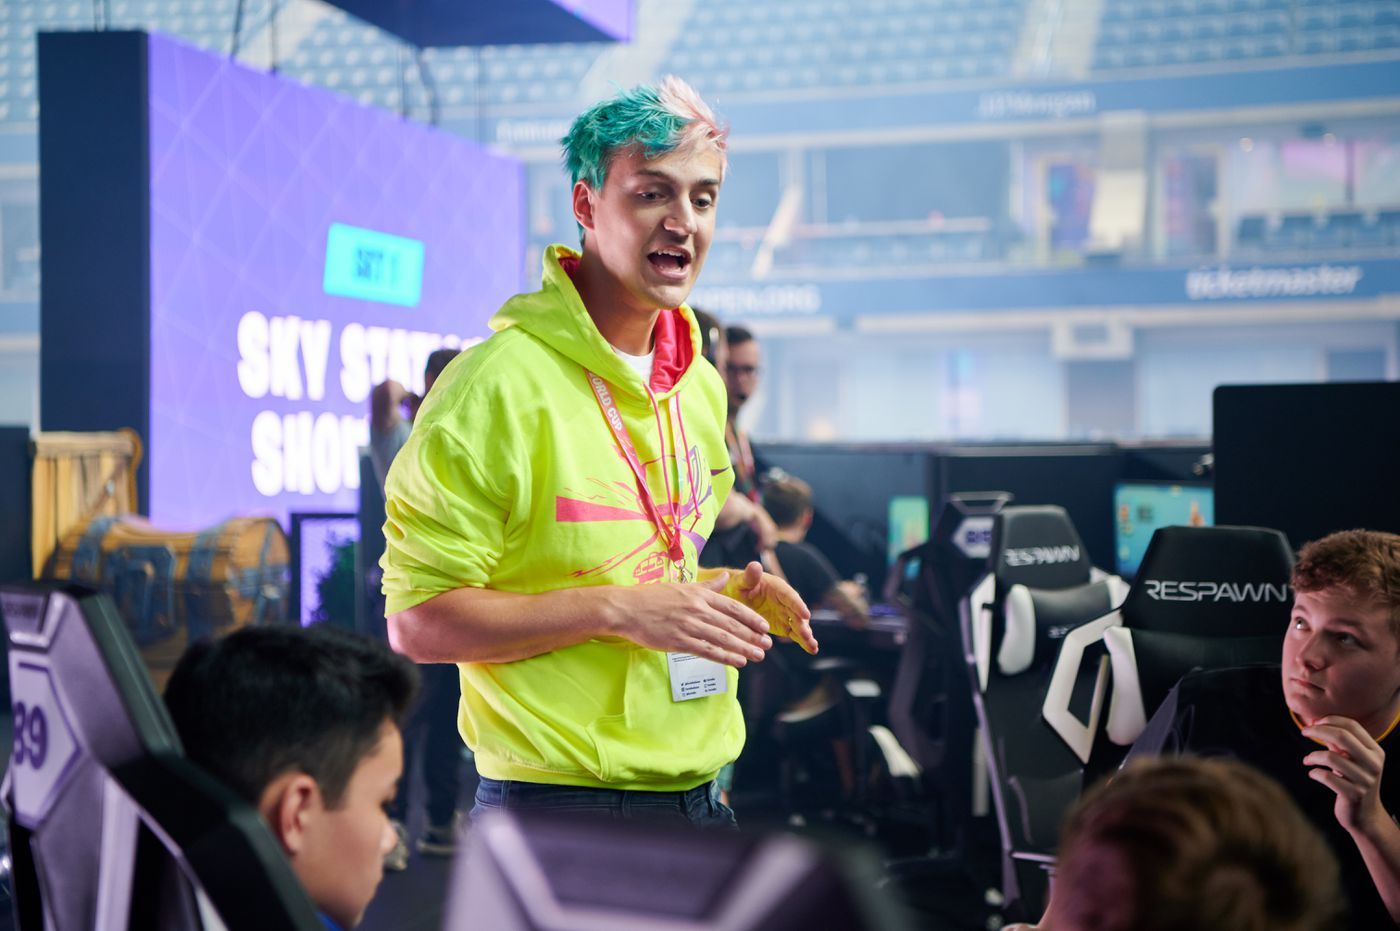 The Fortnite World Cup Finals were a victory lap for Epic